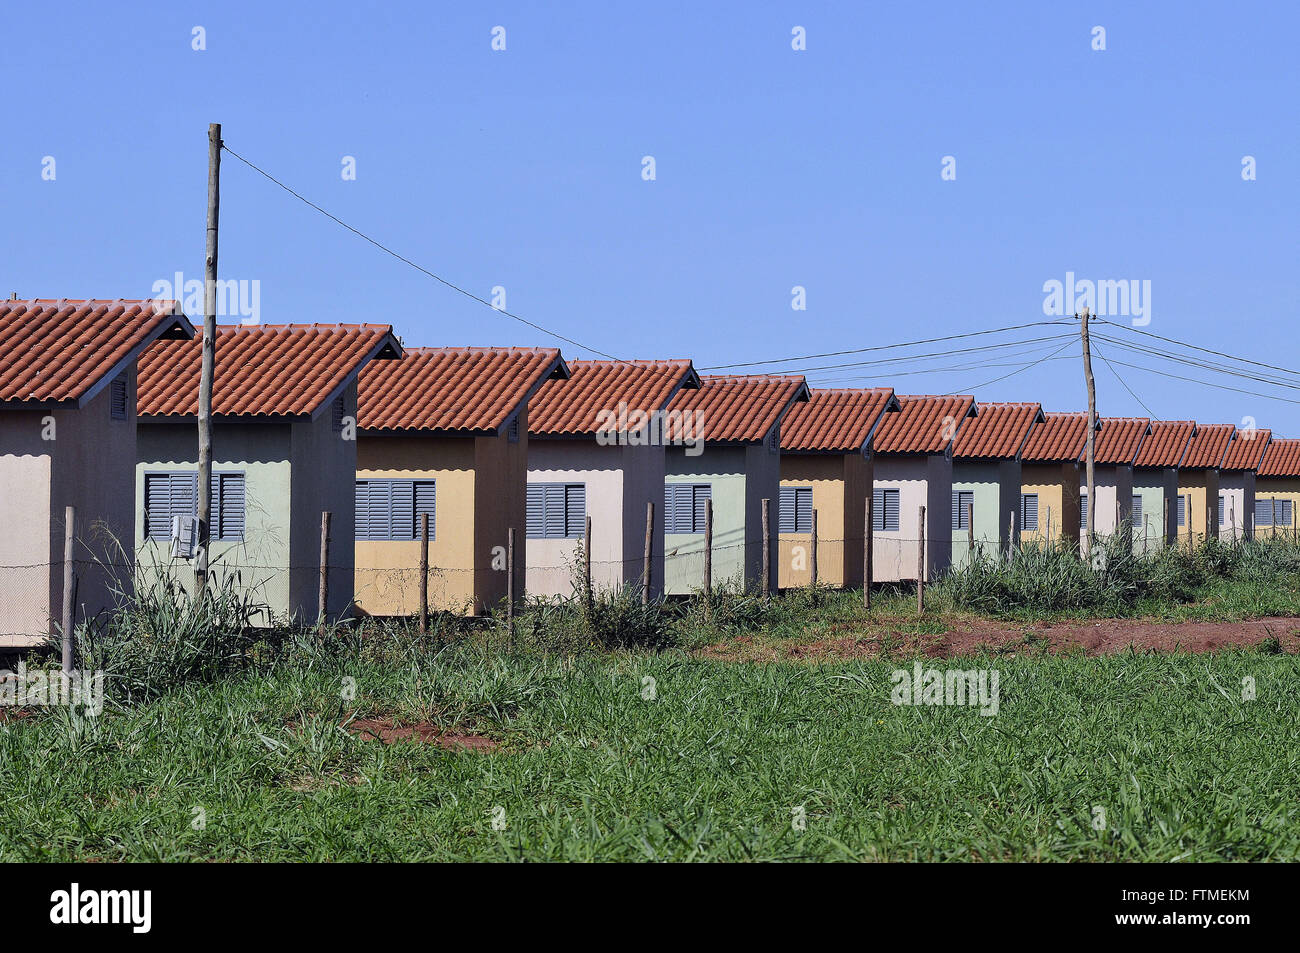 Affordable housing america stock photos affordable for Affordable house construction